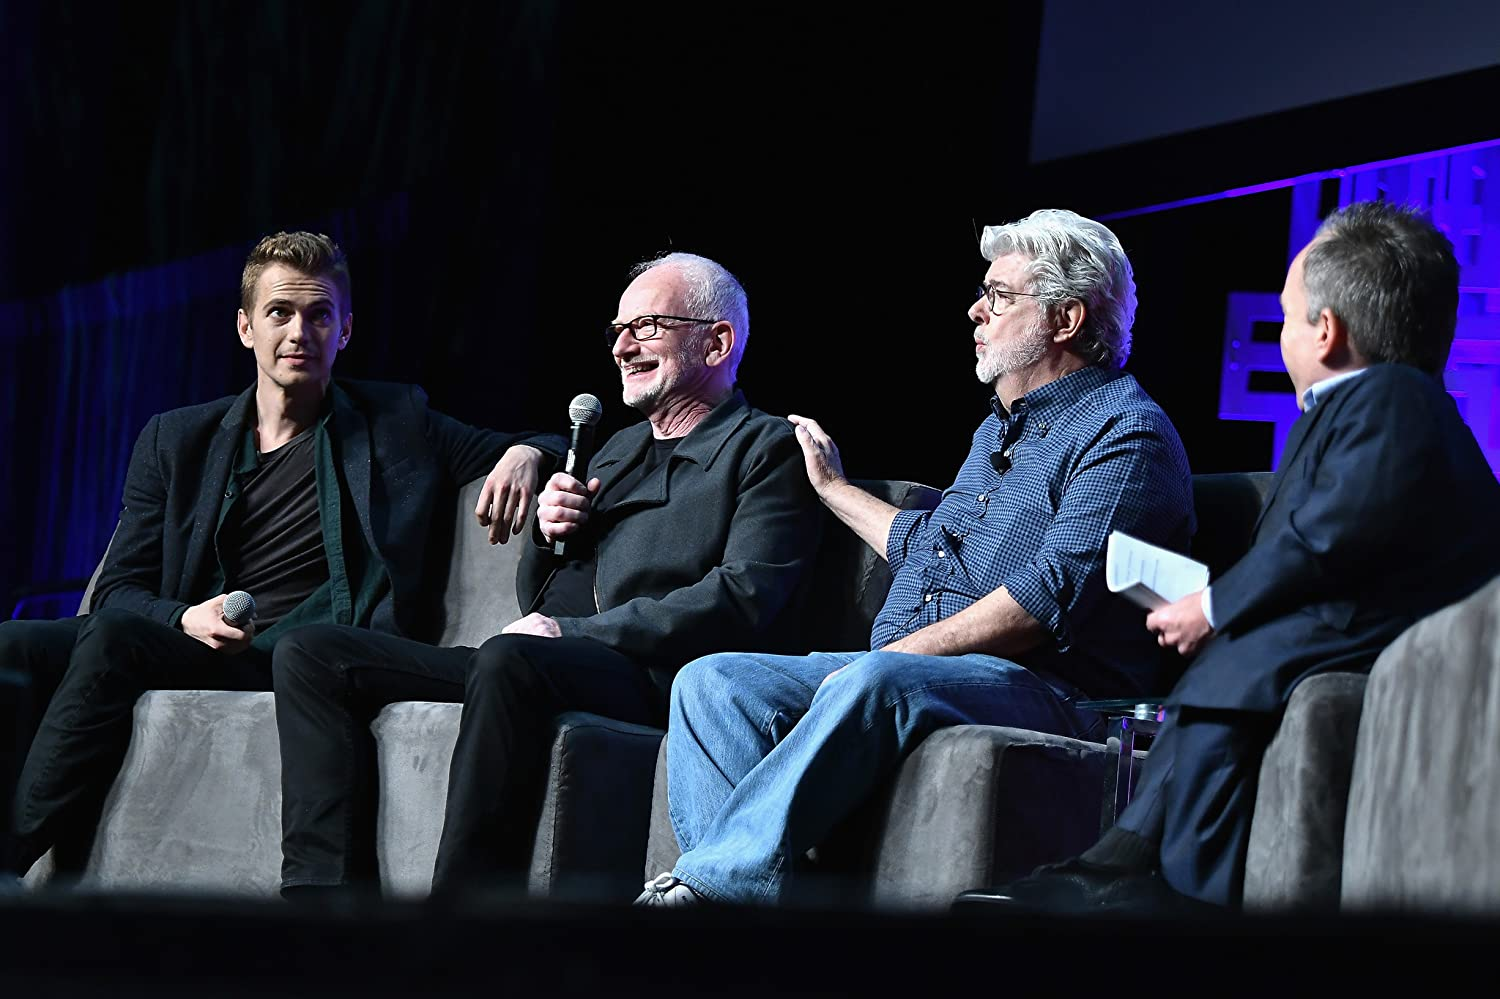 What You Missed At The Star Wars 40th Anniversary Panel At Star Wars Celebration